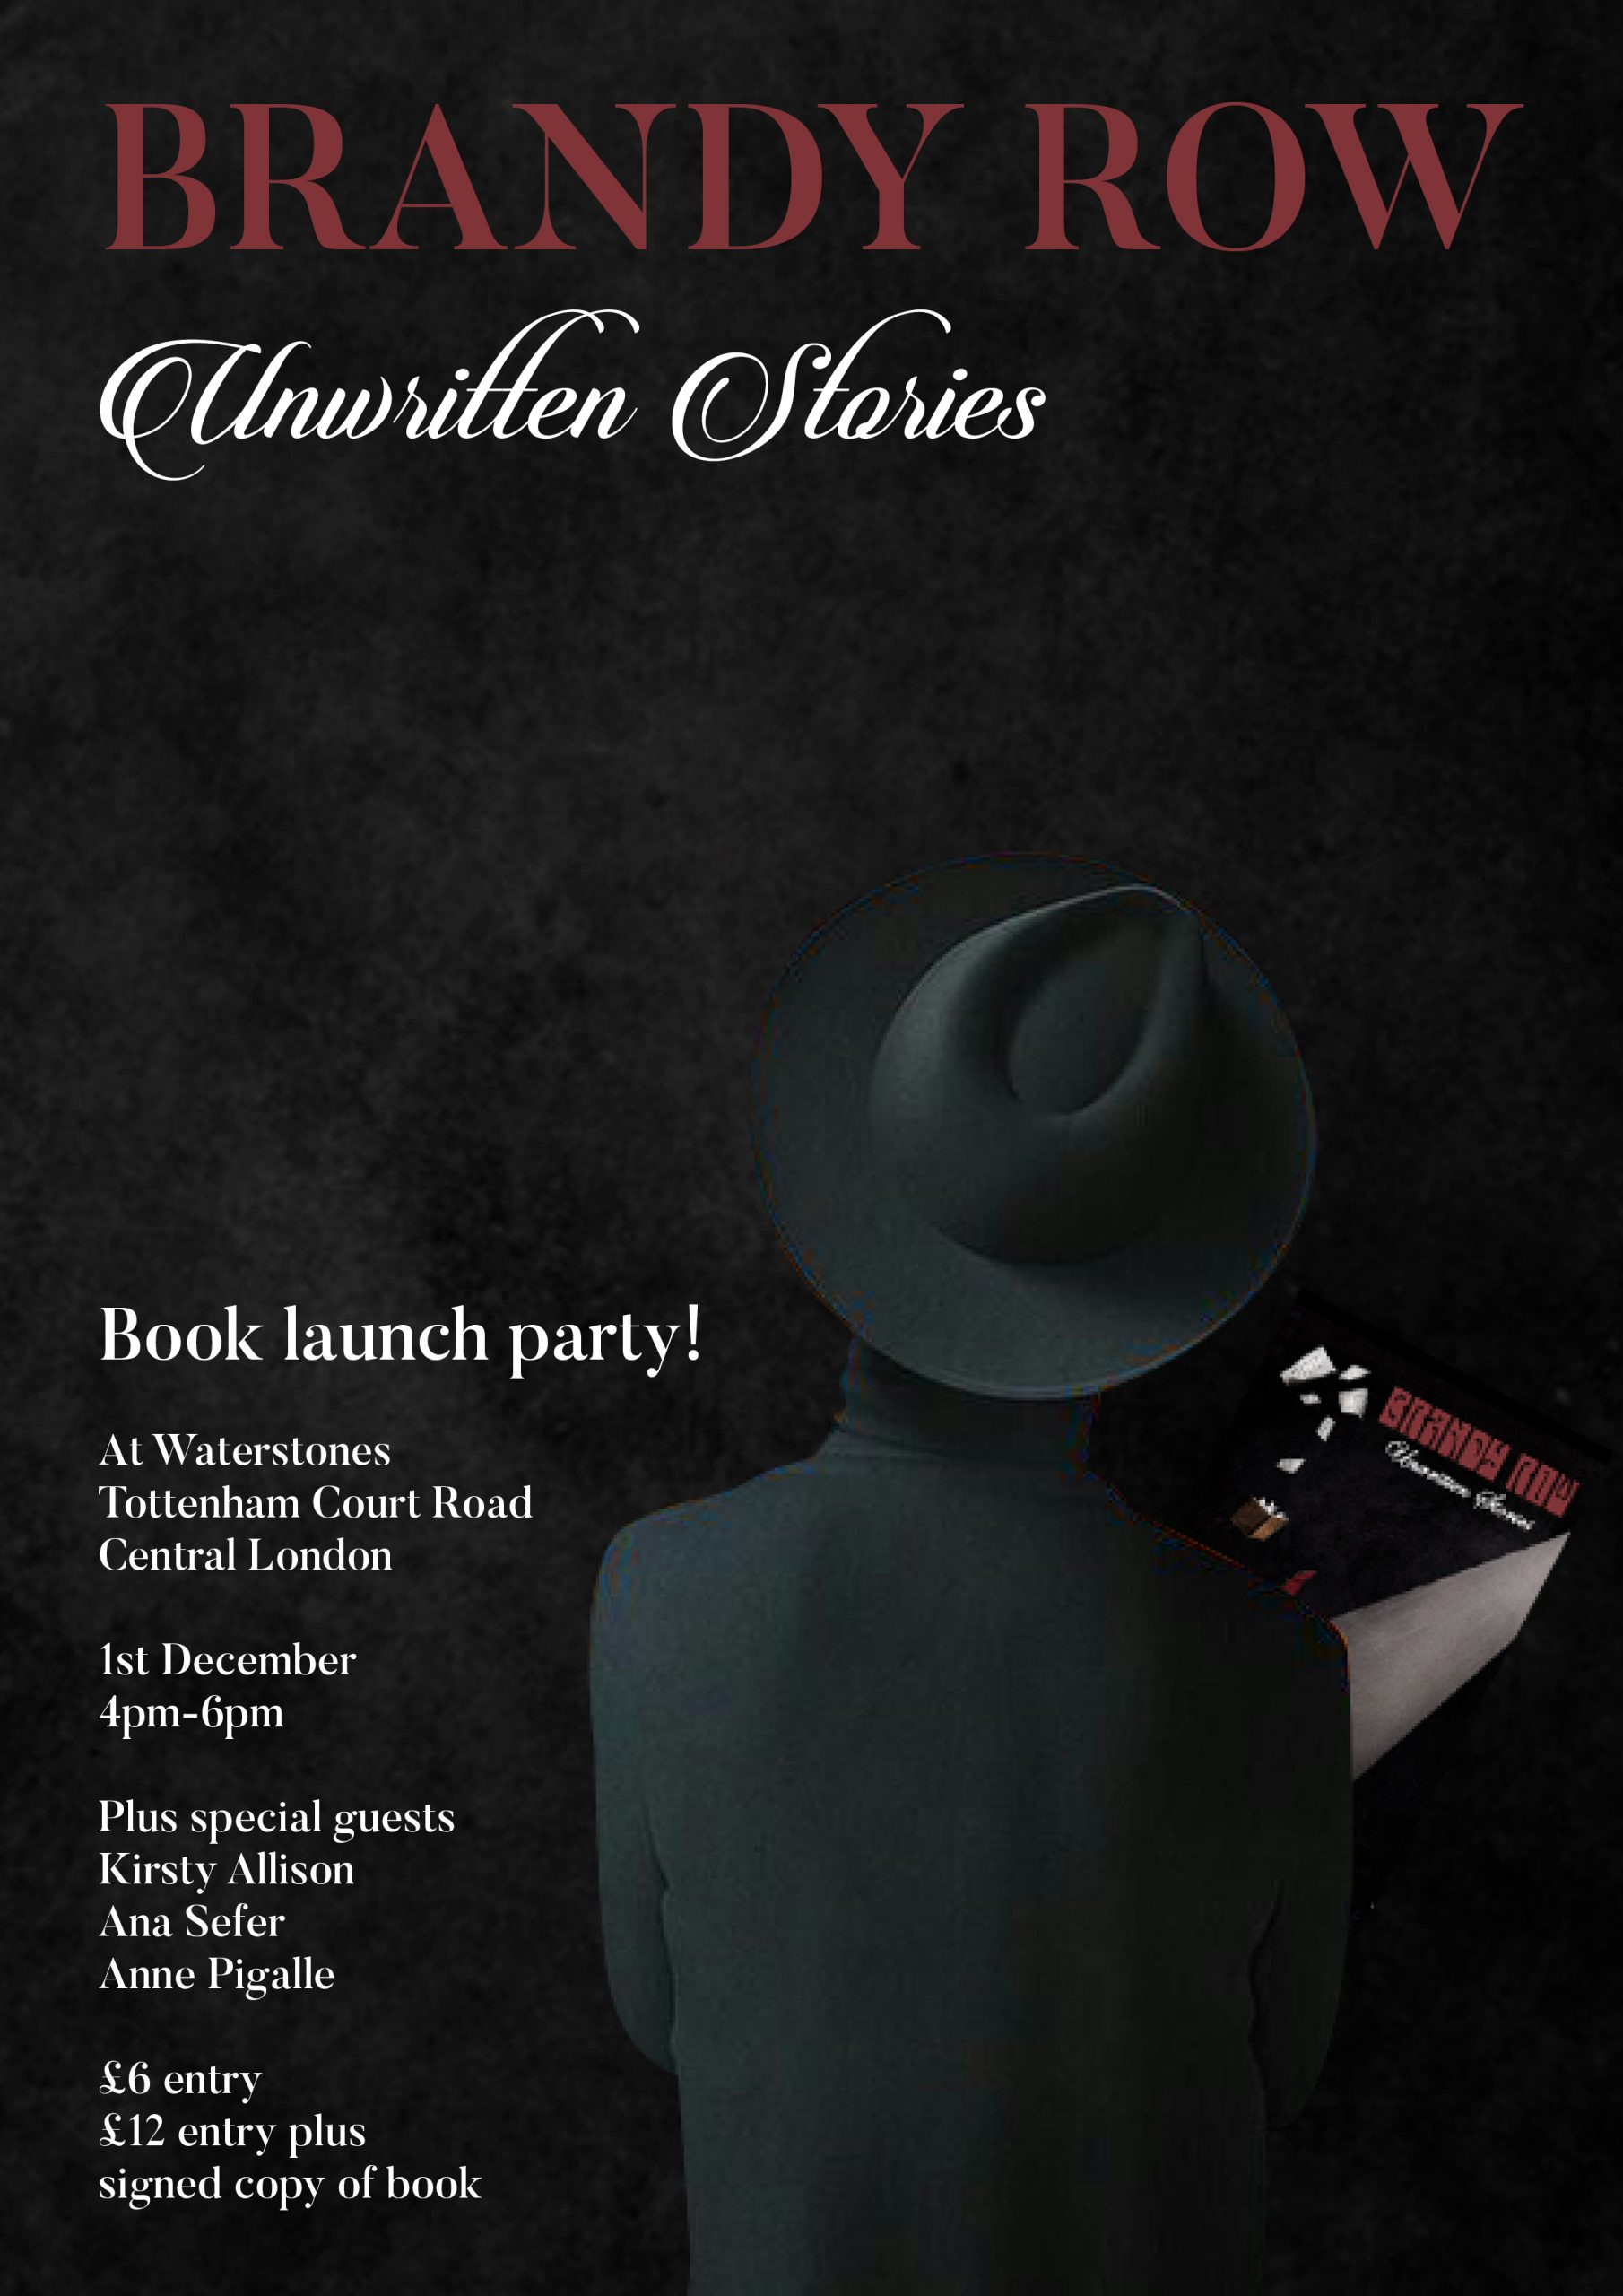 The Book Launch party for my new book 'Unwritten Stories' Will be held at Waterstones Book Store On Tottenham Court Road central London on the 1st of December